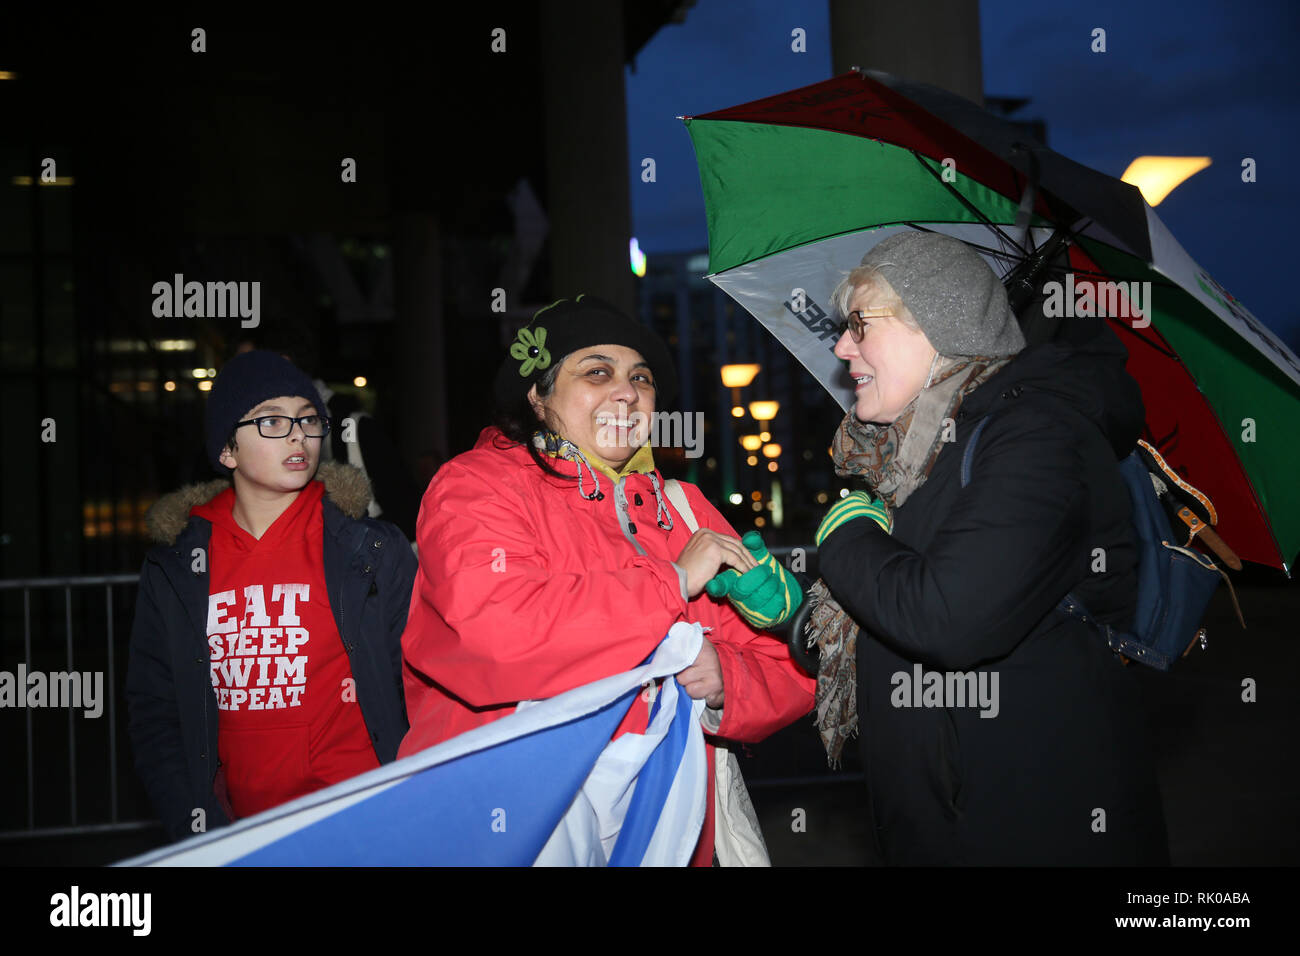 Salford, Greater Manchester, UK. 8th Feb 2019. Pro Palestinian campaigner and pro Israeli outside the BBC as an audience gathers for the live filming of 'Eurovision you decide'.  Eurovision 2019 will take place in Israel and pro Israeli's gathered outside the studios  to counter protest  those in support of Palestine who are calling on the BBC to withdraw from the 2019 Eurovision song contest.   BBC, Media City, Salford, UK, 8th February 2019 Credit: Barbara Cook/Alamy Live News - Stock Image